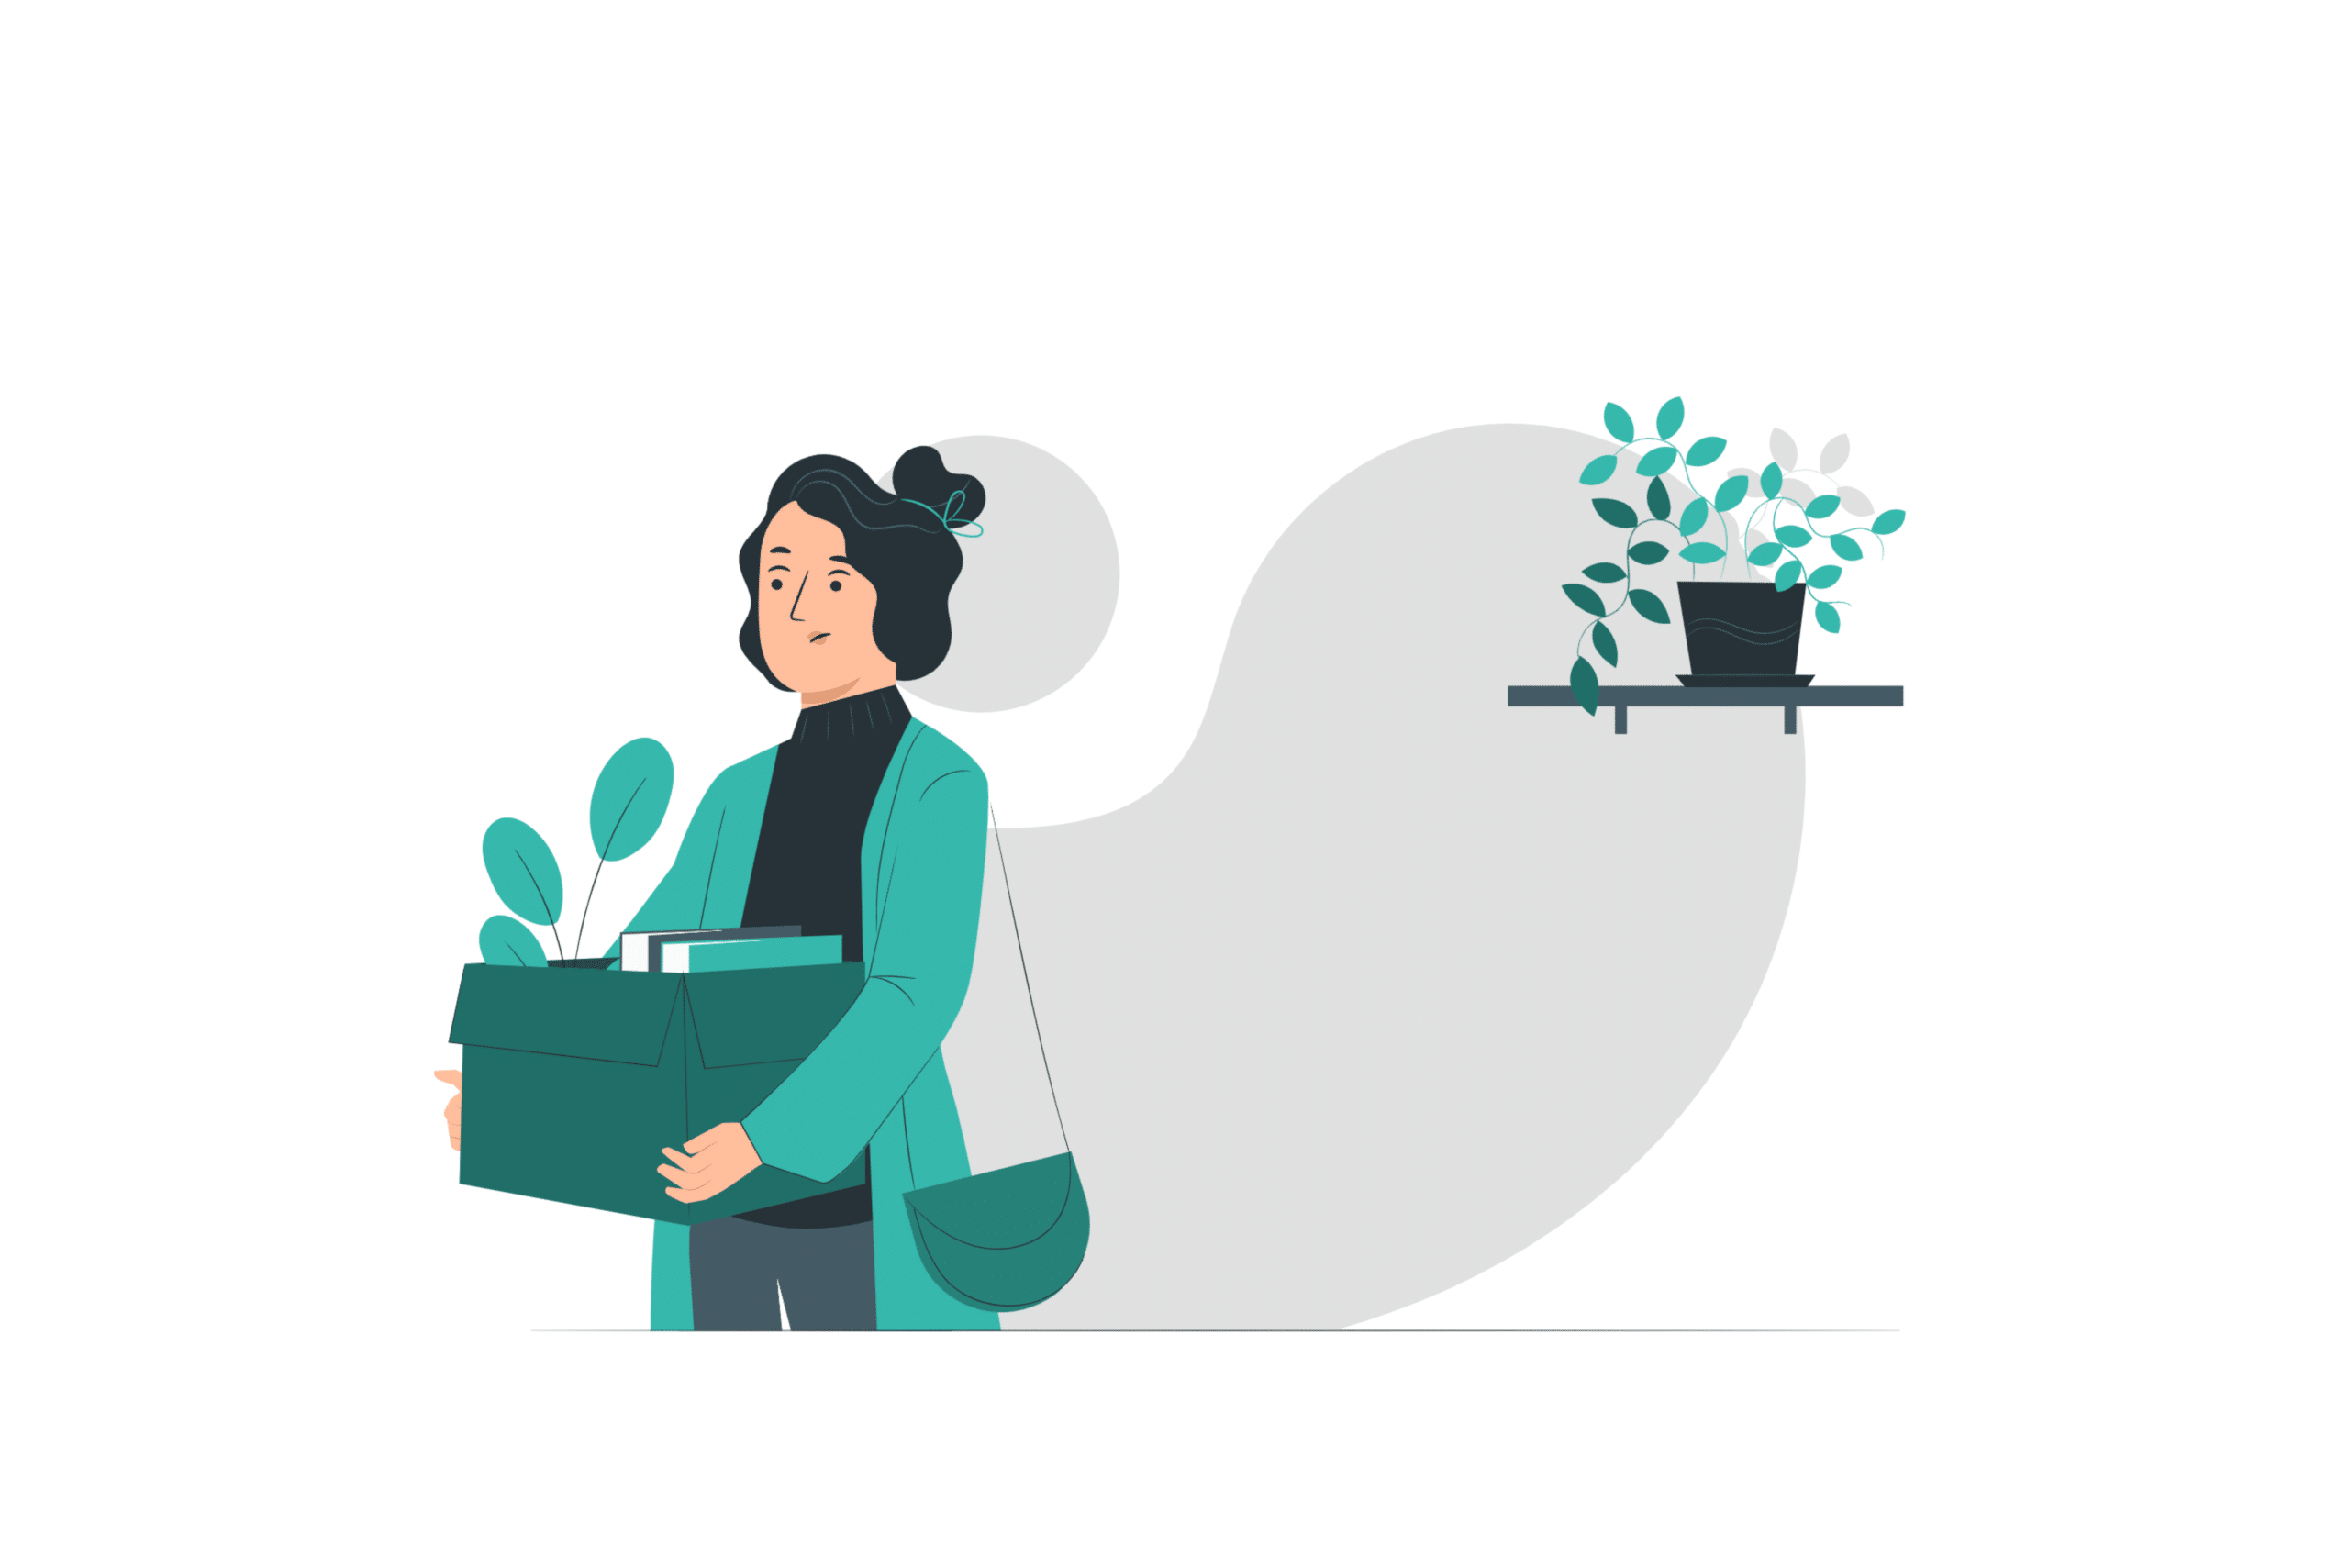 Illustration about a tenant picking up her stuff and moving out